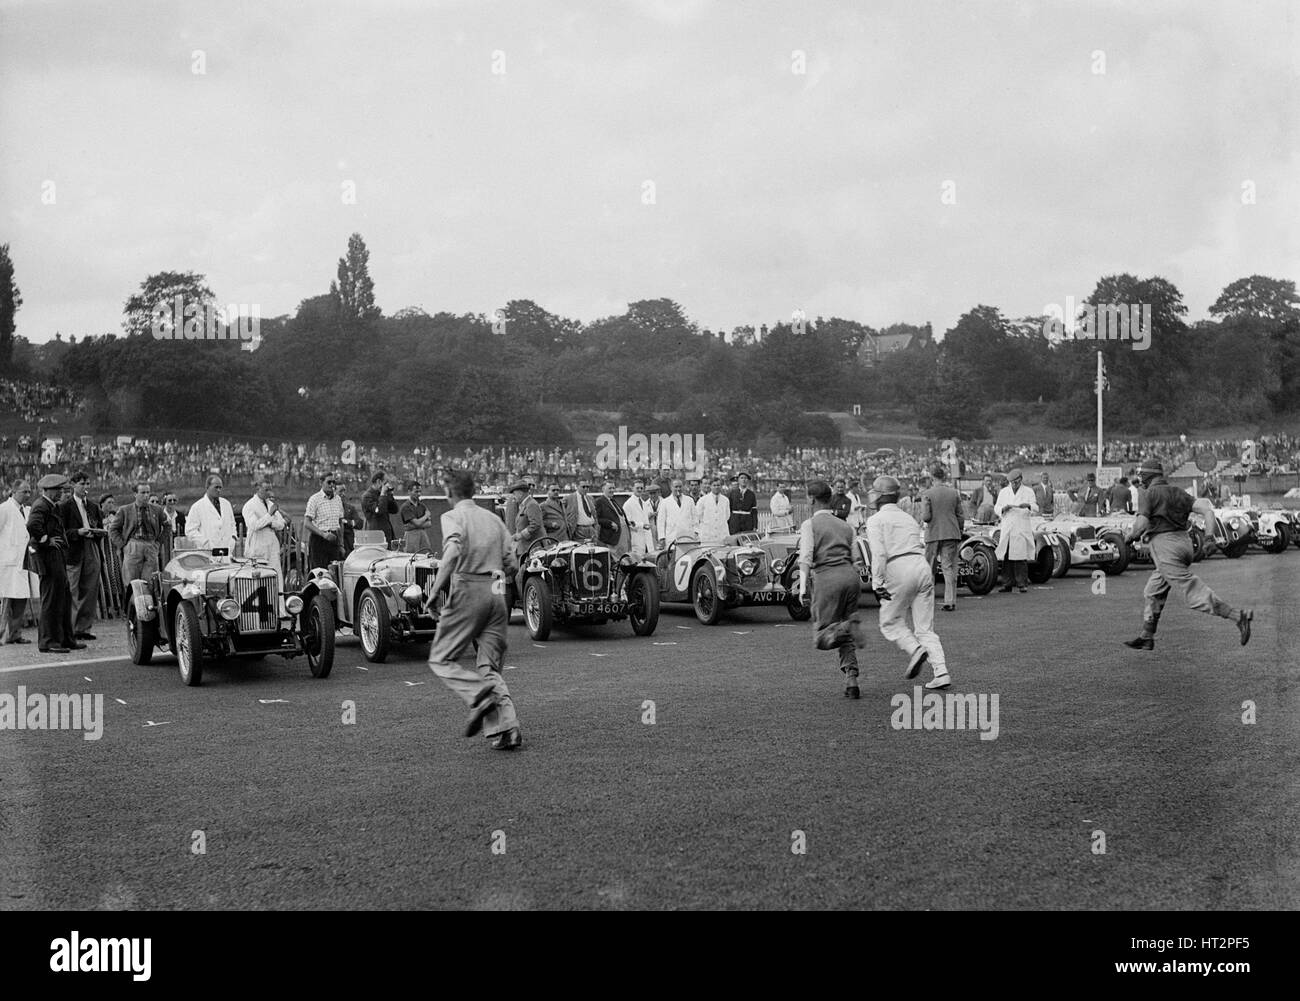 Drivers running to their cars at the start of a race at Crystal Palace, London, 1939. Artist: Bill Brunell. - Stock Image